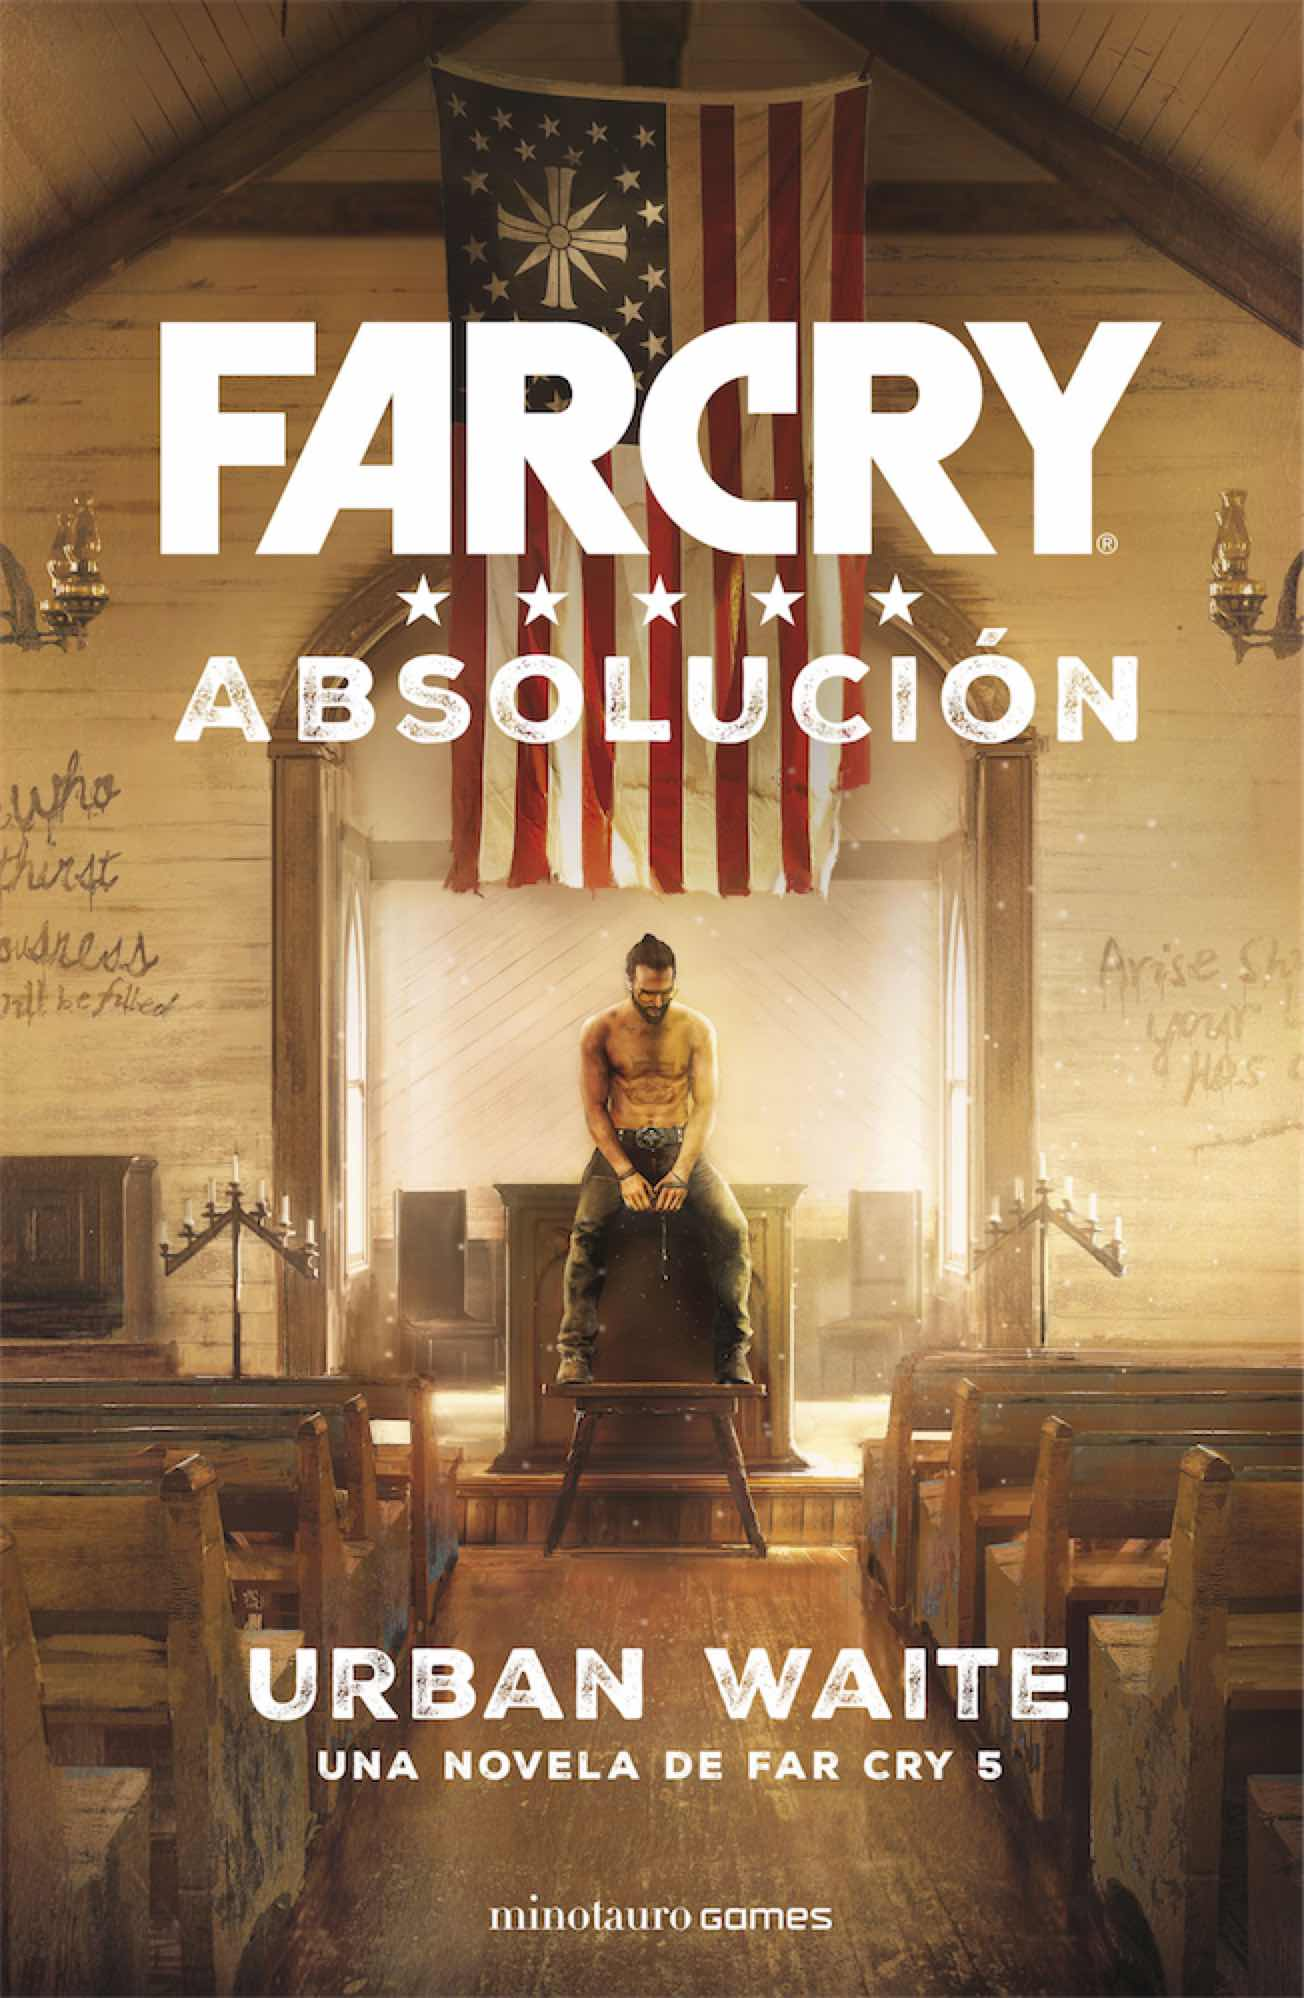 FAR CRY. ABSOLUCION